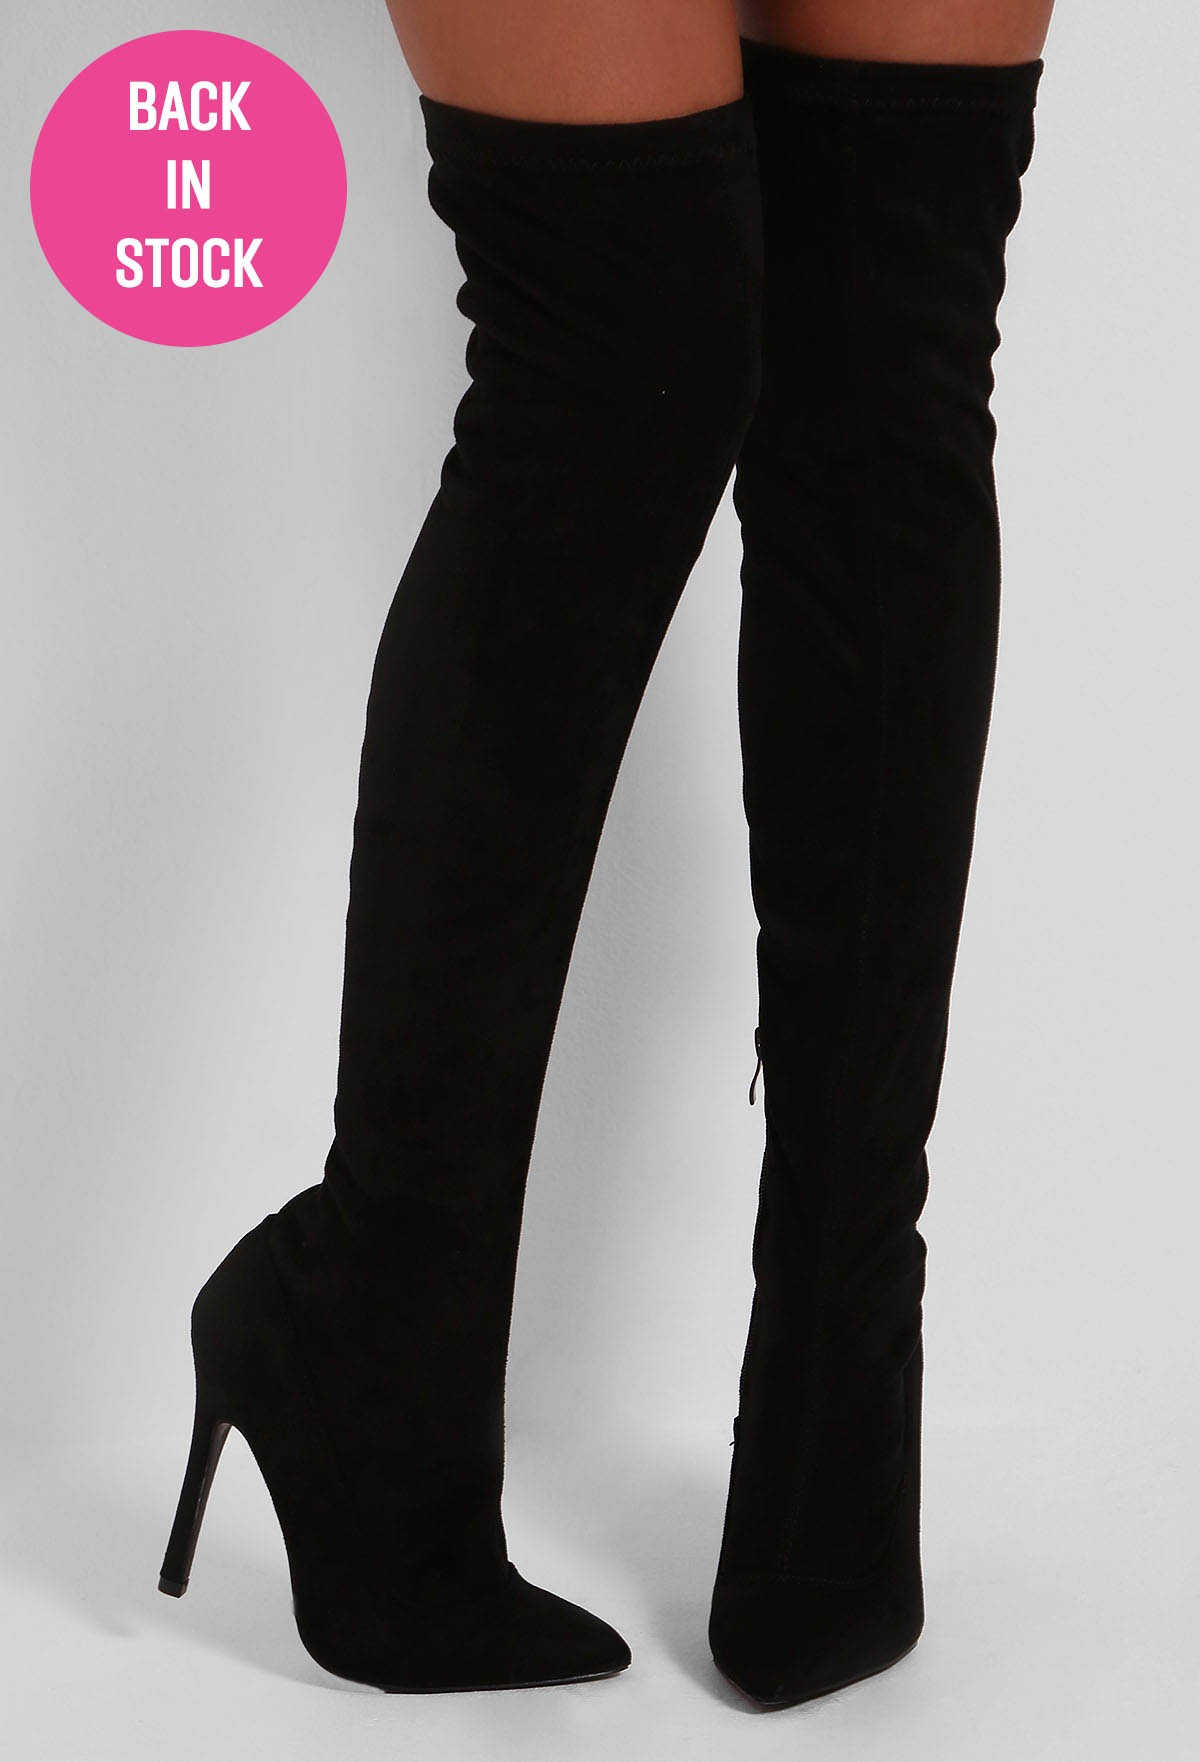 Over The Knee Black Heeled Boots - Cr Boot